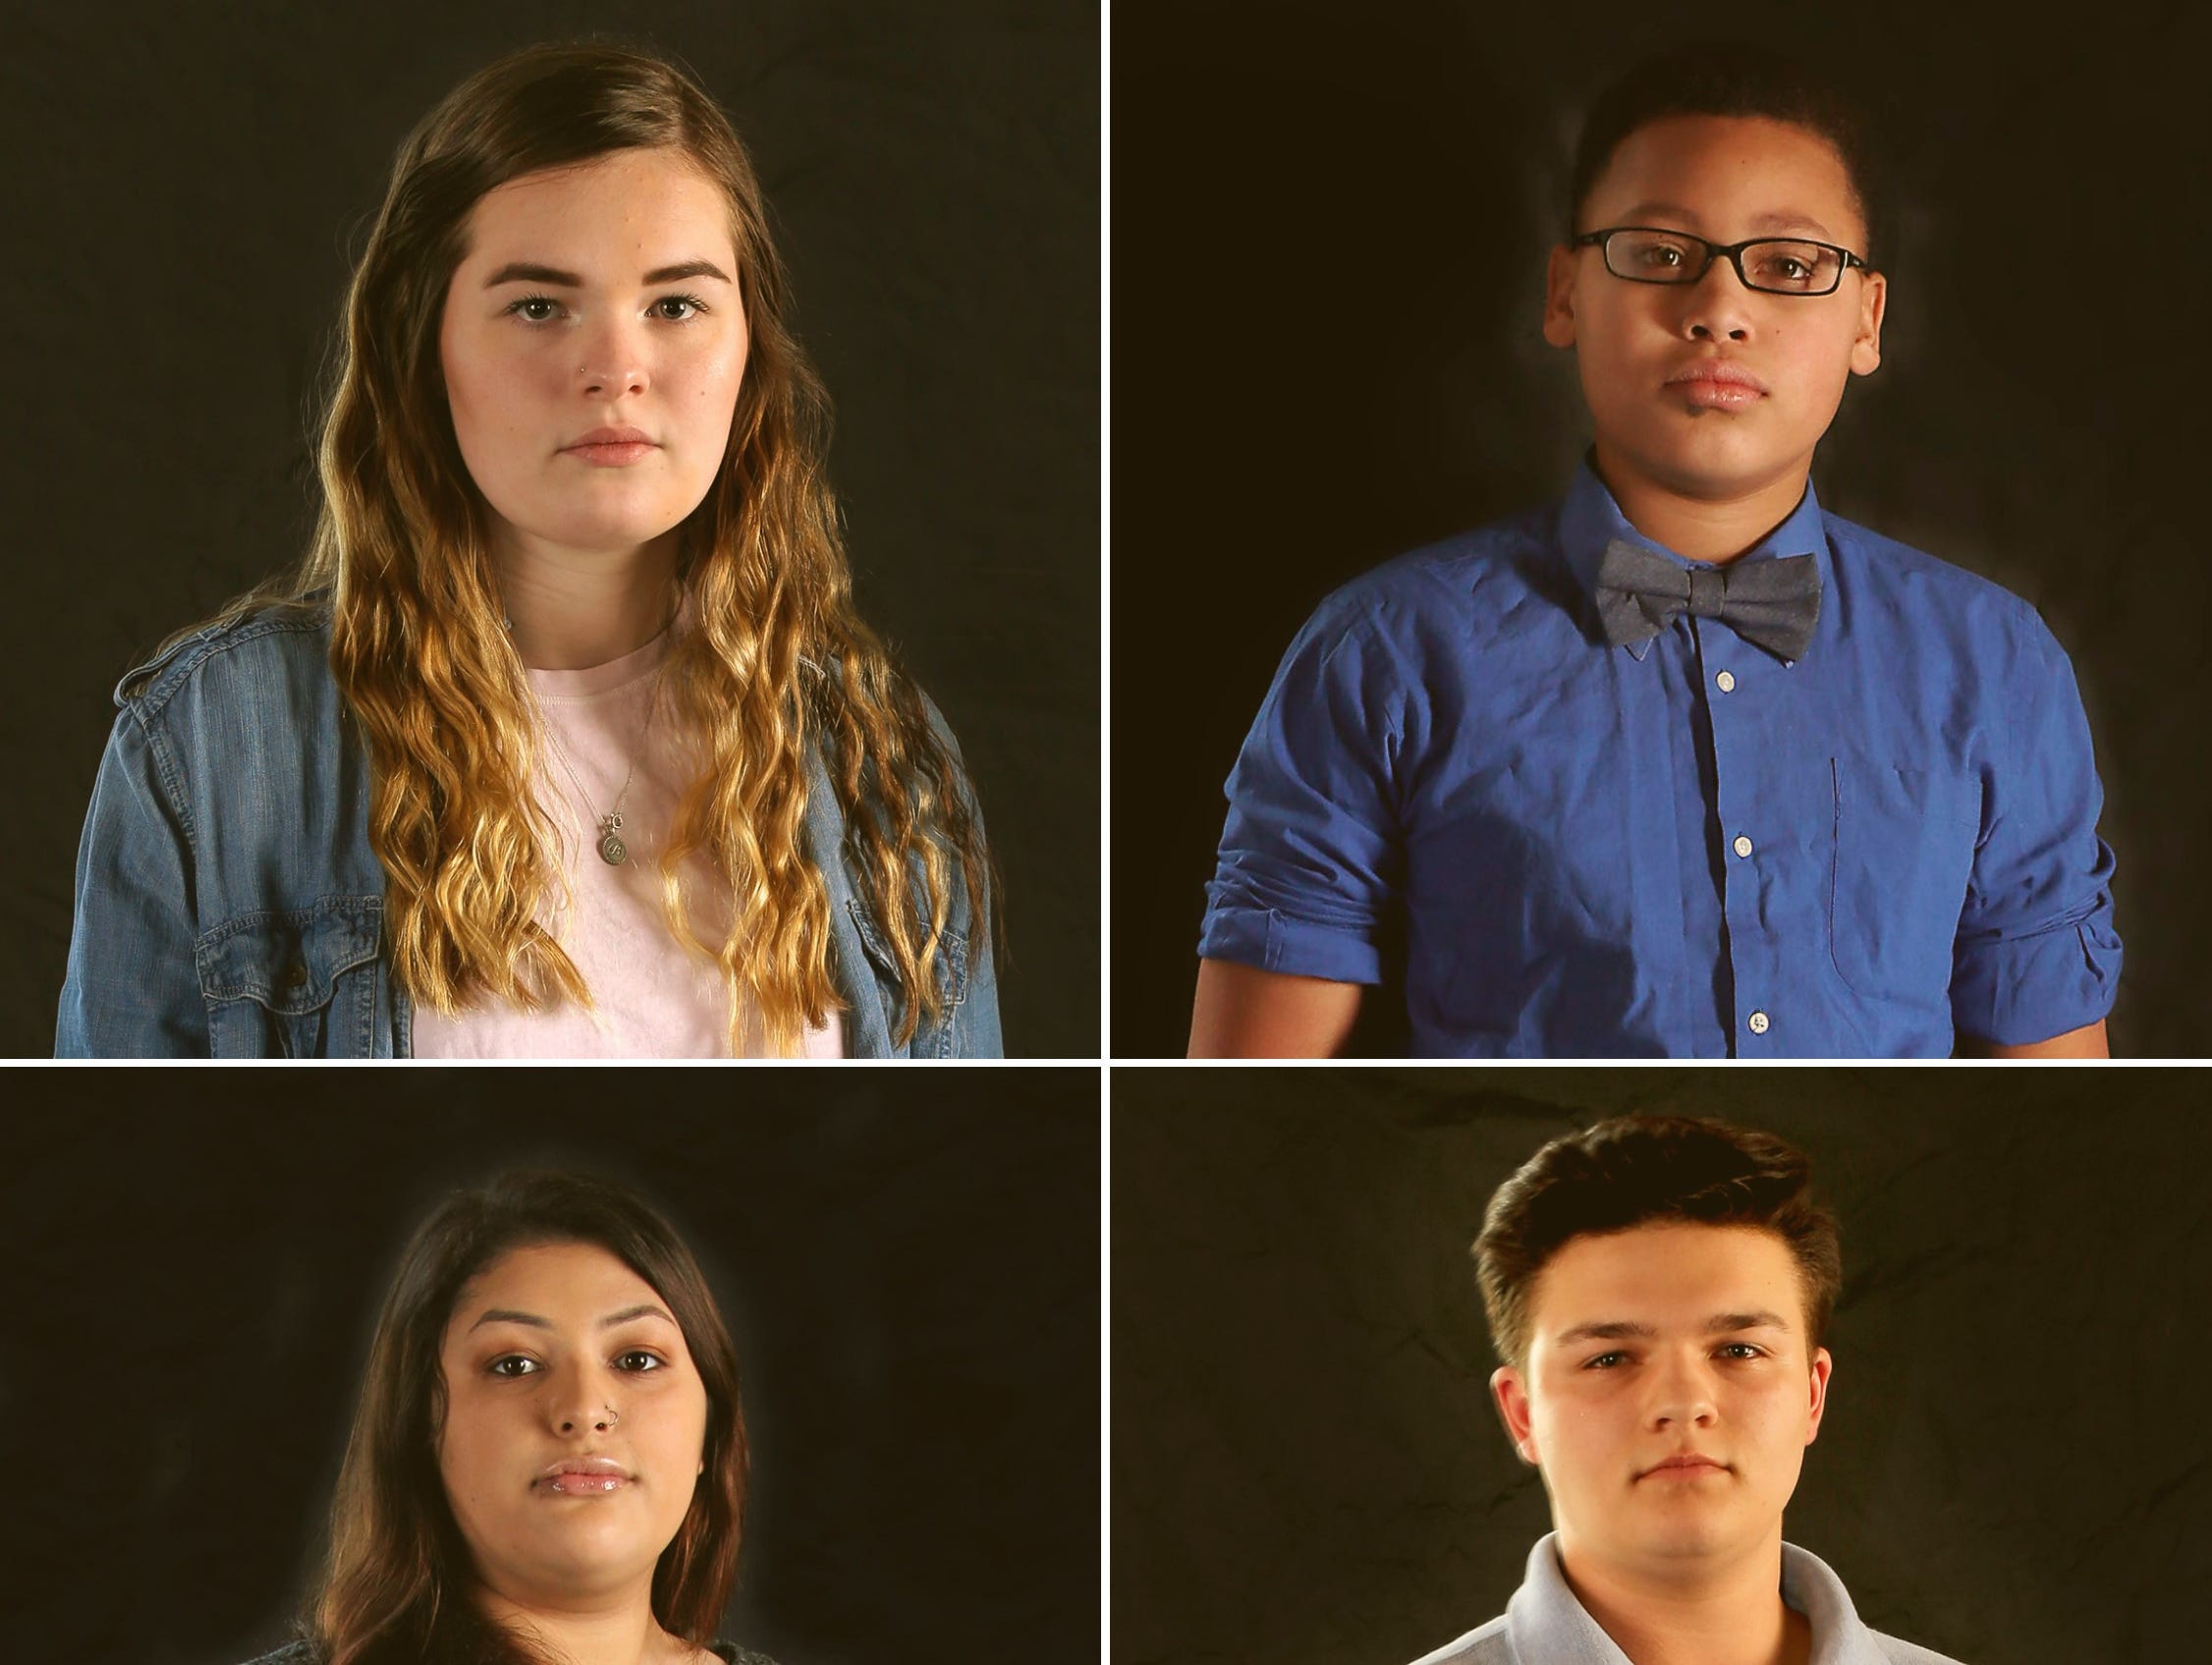 Wisconsin teens will share their mental health challenges in new Milwaukee PBS documentary